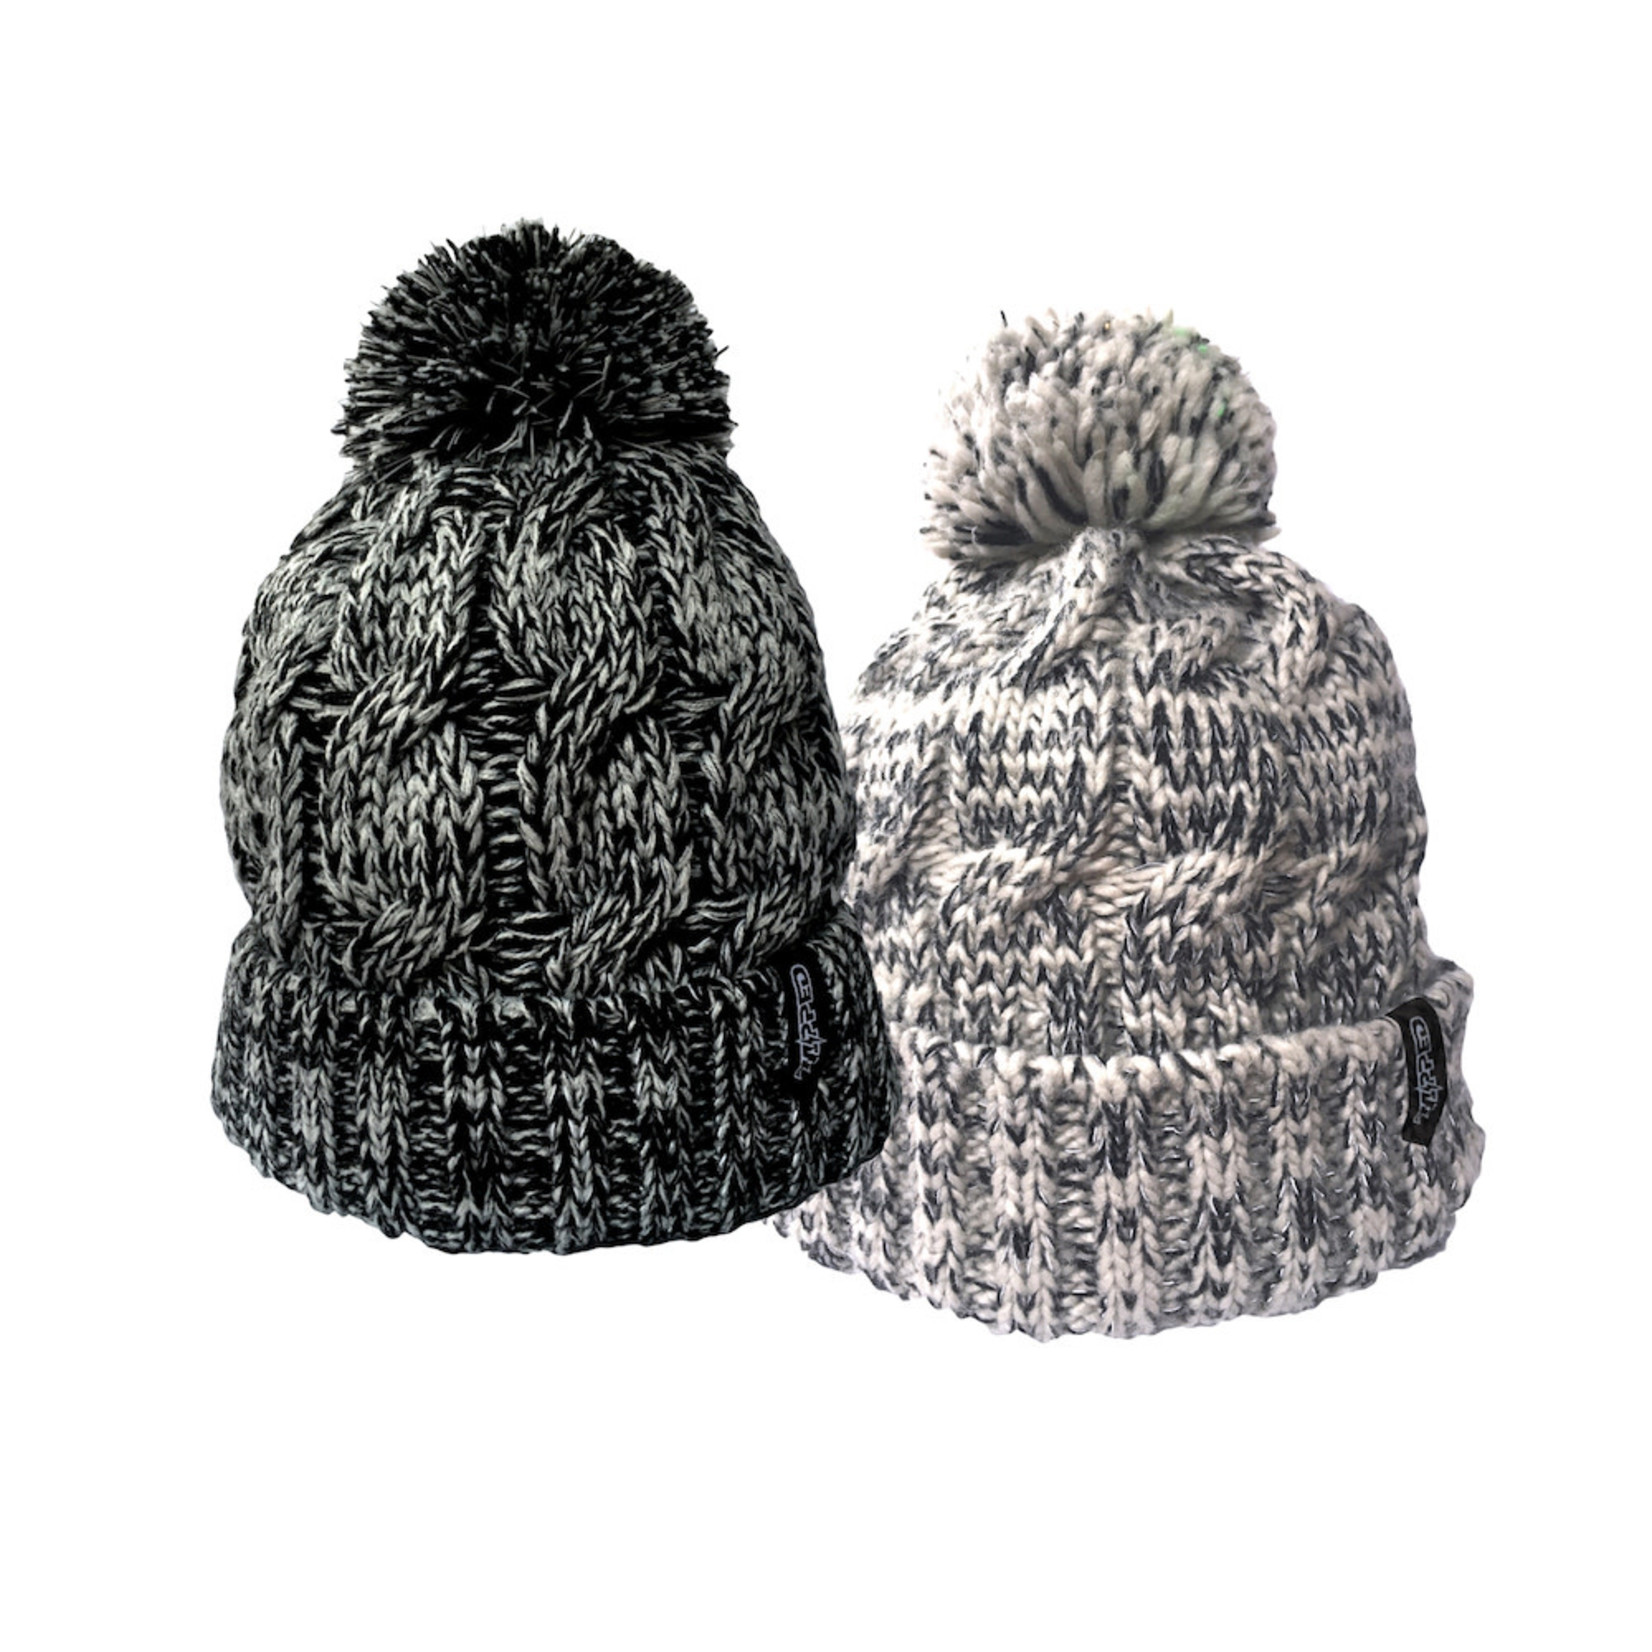 Zapped Outfitters Zapped Bolt Beanie